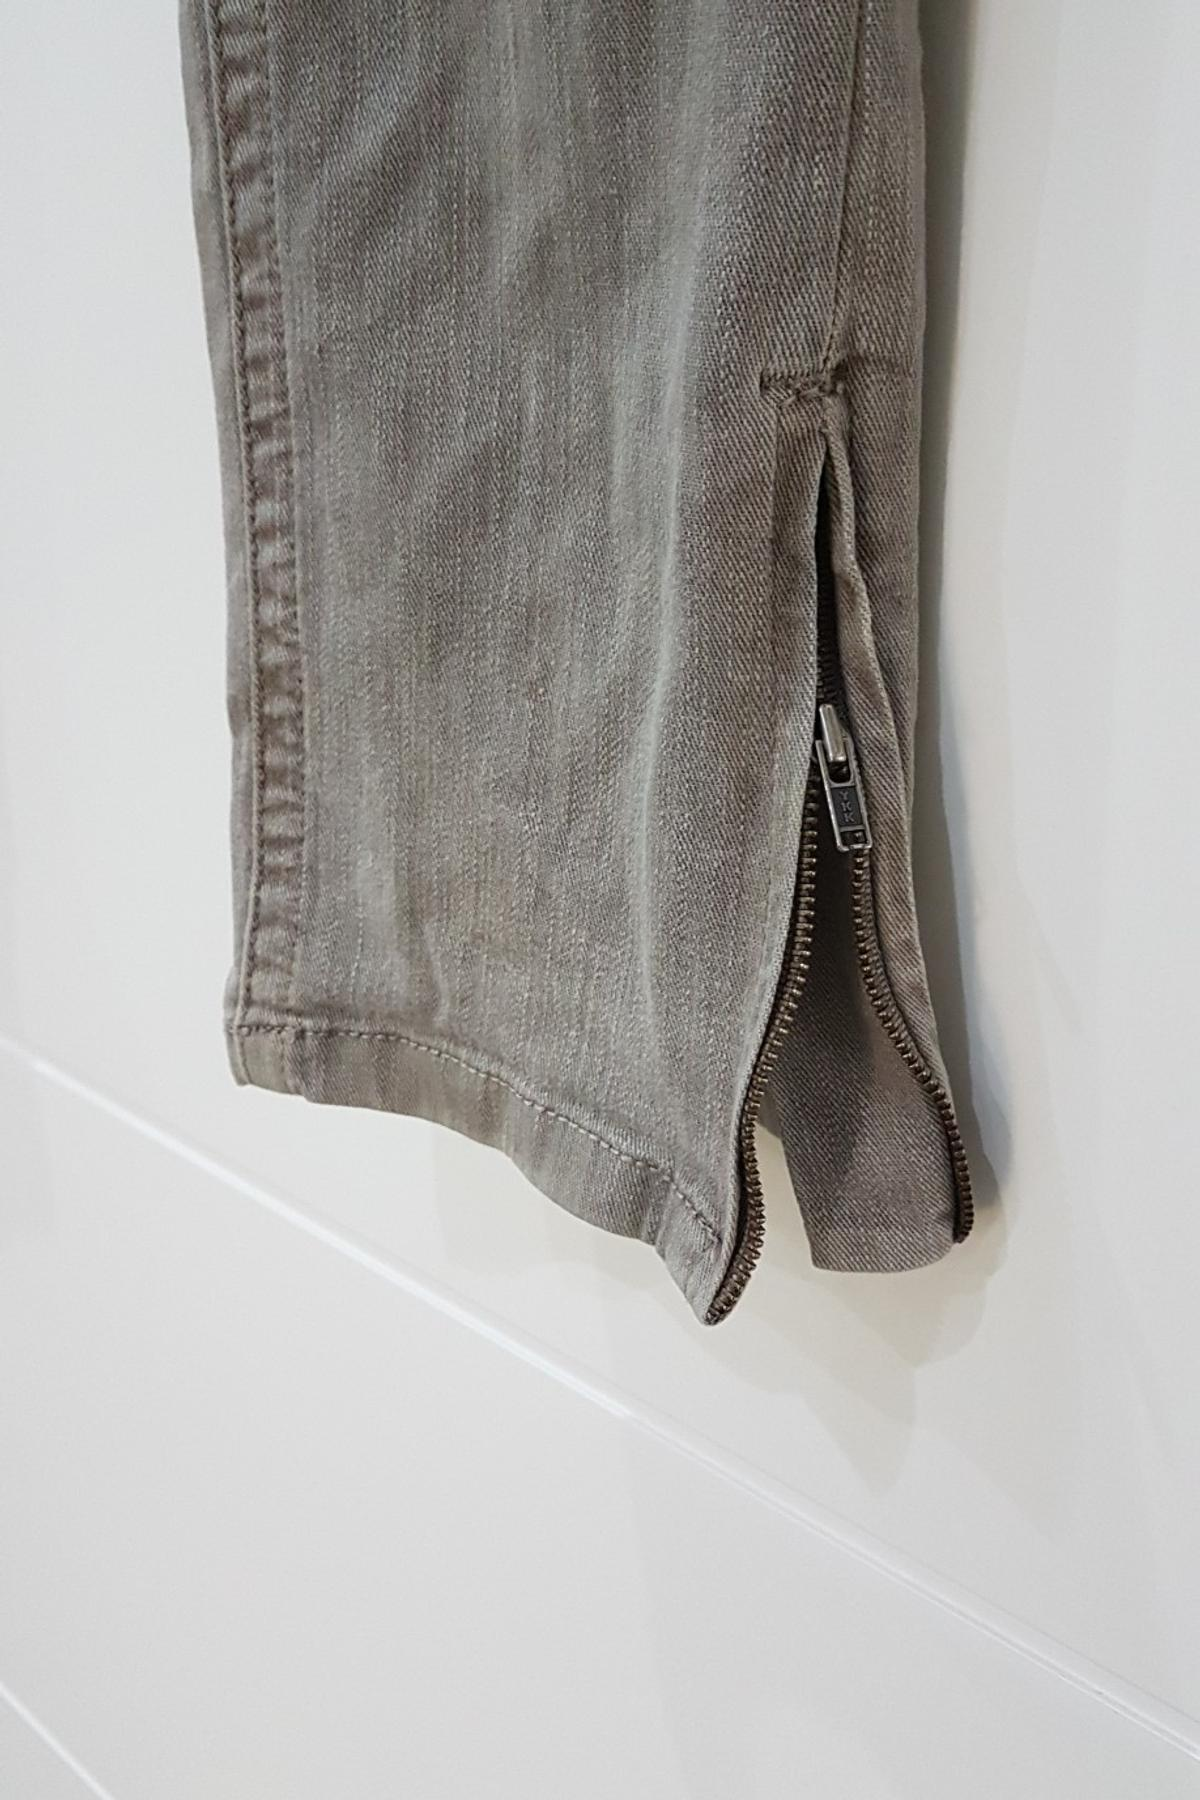 Jeans 34 In 29649 Wietzendorf For 5 00 For Sale Shpock